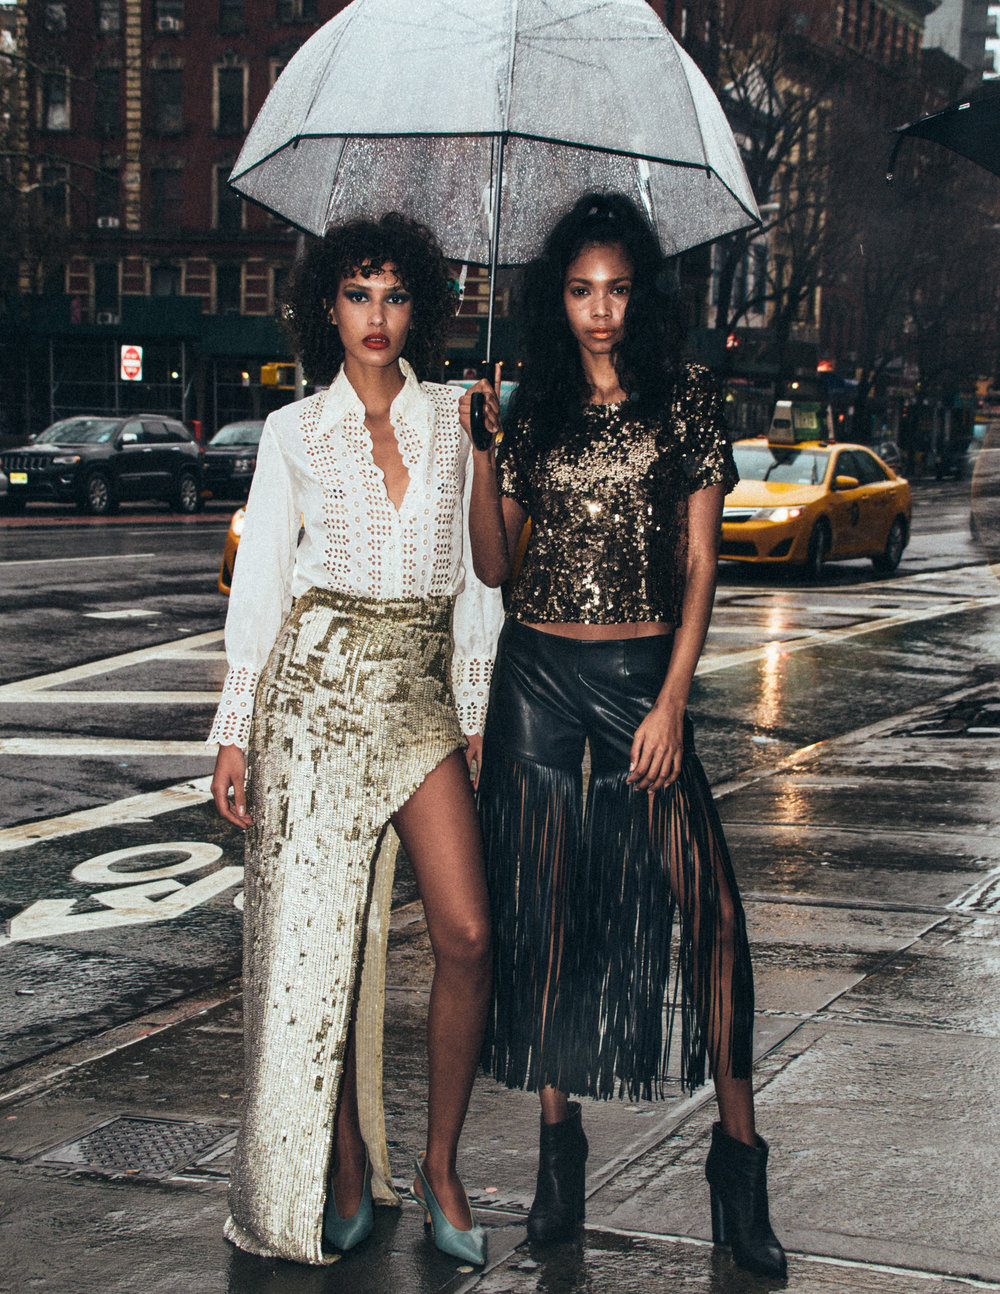 NYCity GIRLS by LIANA CARBONE-8502.jpg